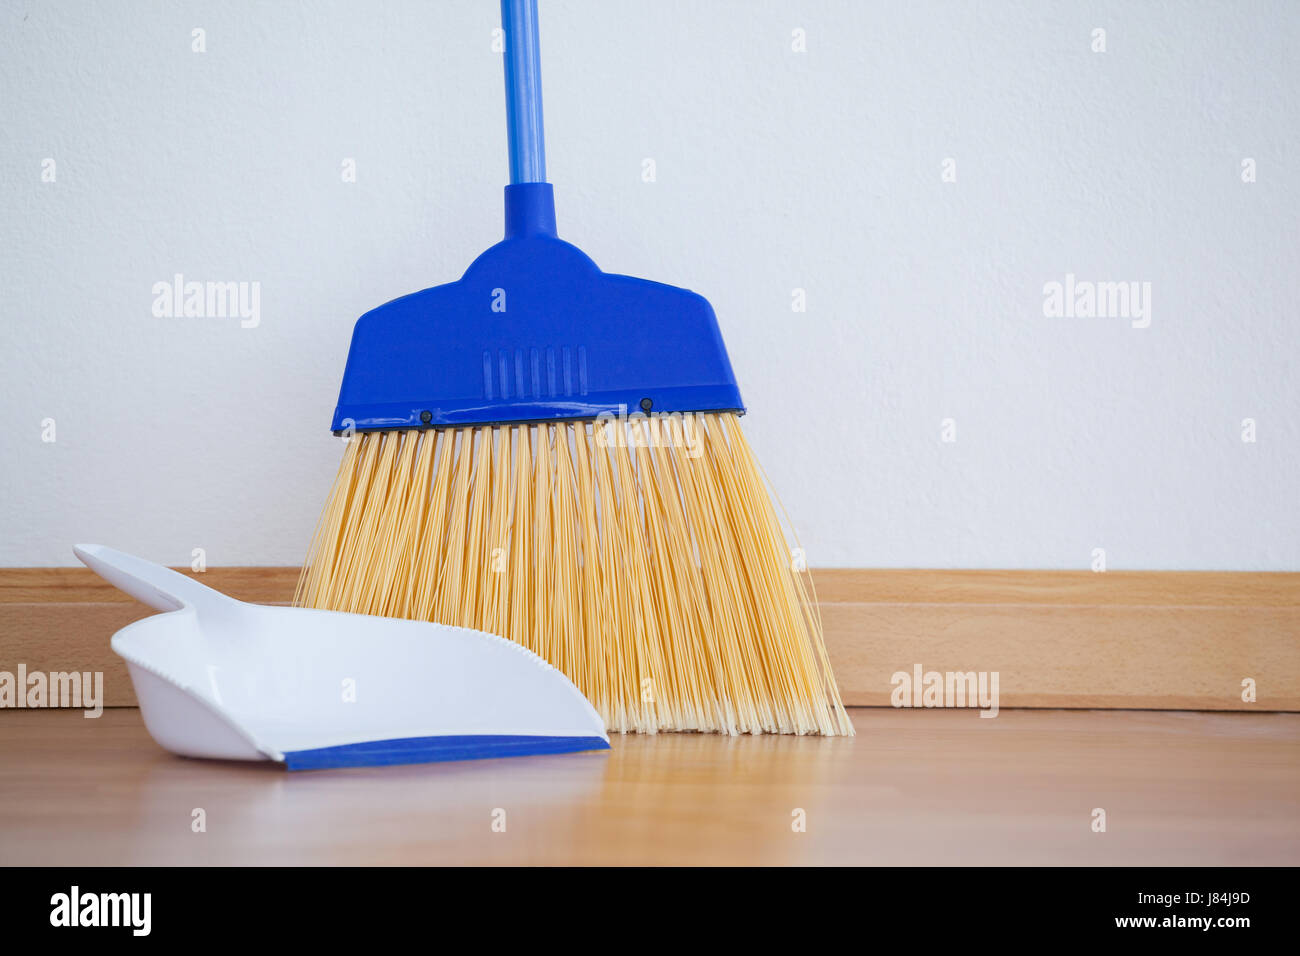 close-up of dustpan and sweeping broom on wooden floor stock photo